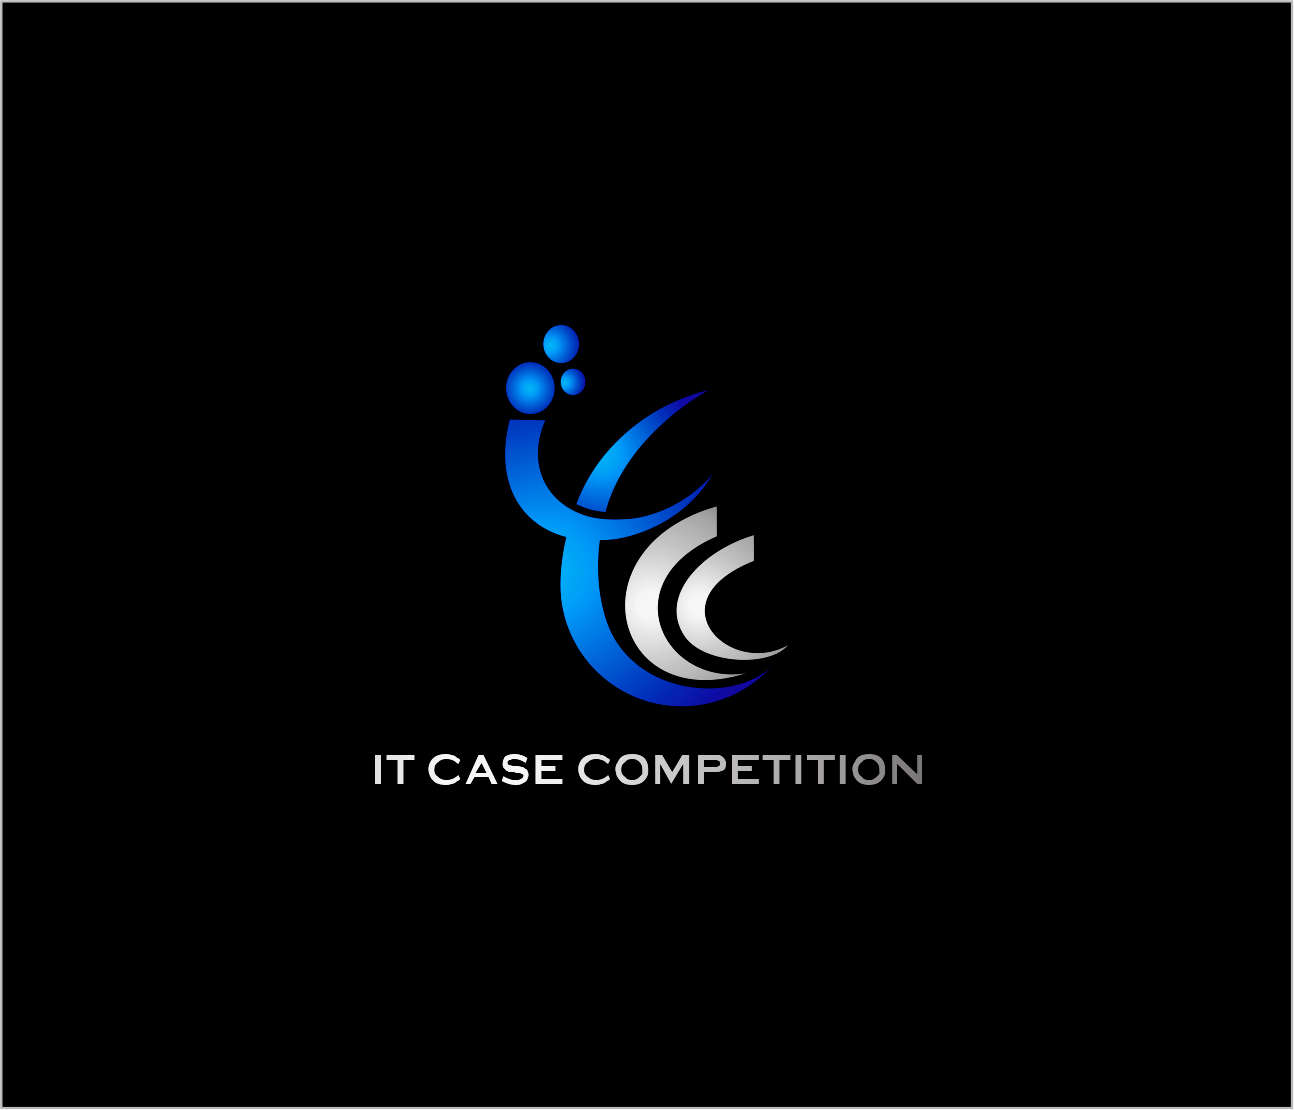 Logo Design by Armada Jamaluddin - Entry No. 111 in the Logo Design Contest Inspiring Logo Design for ITCC.